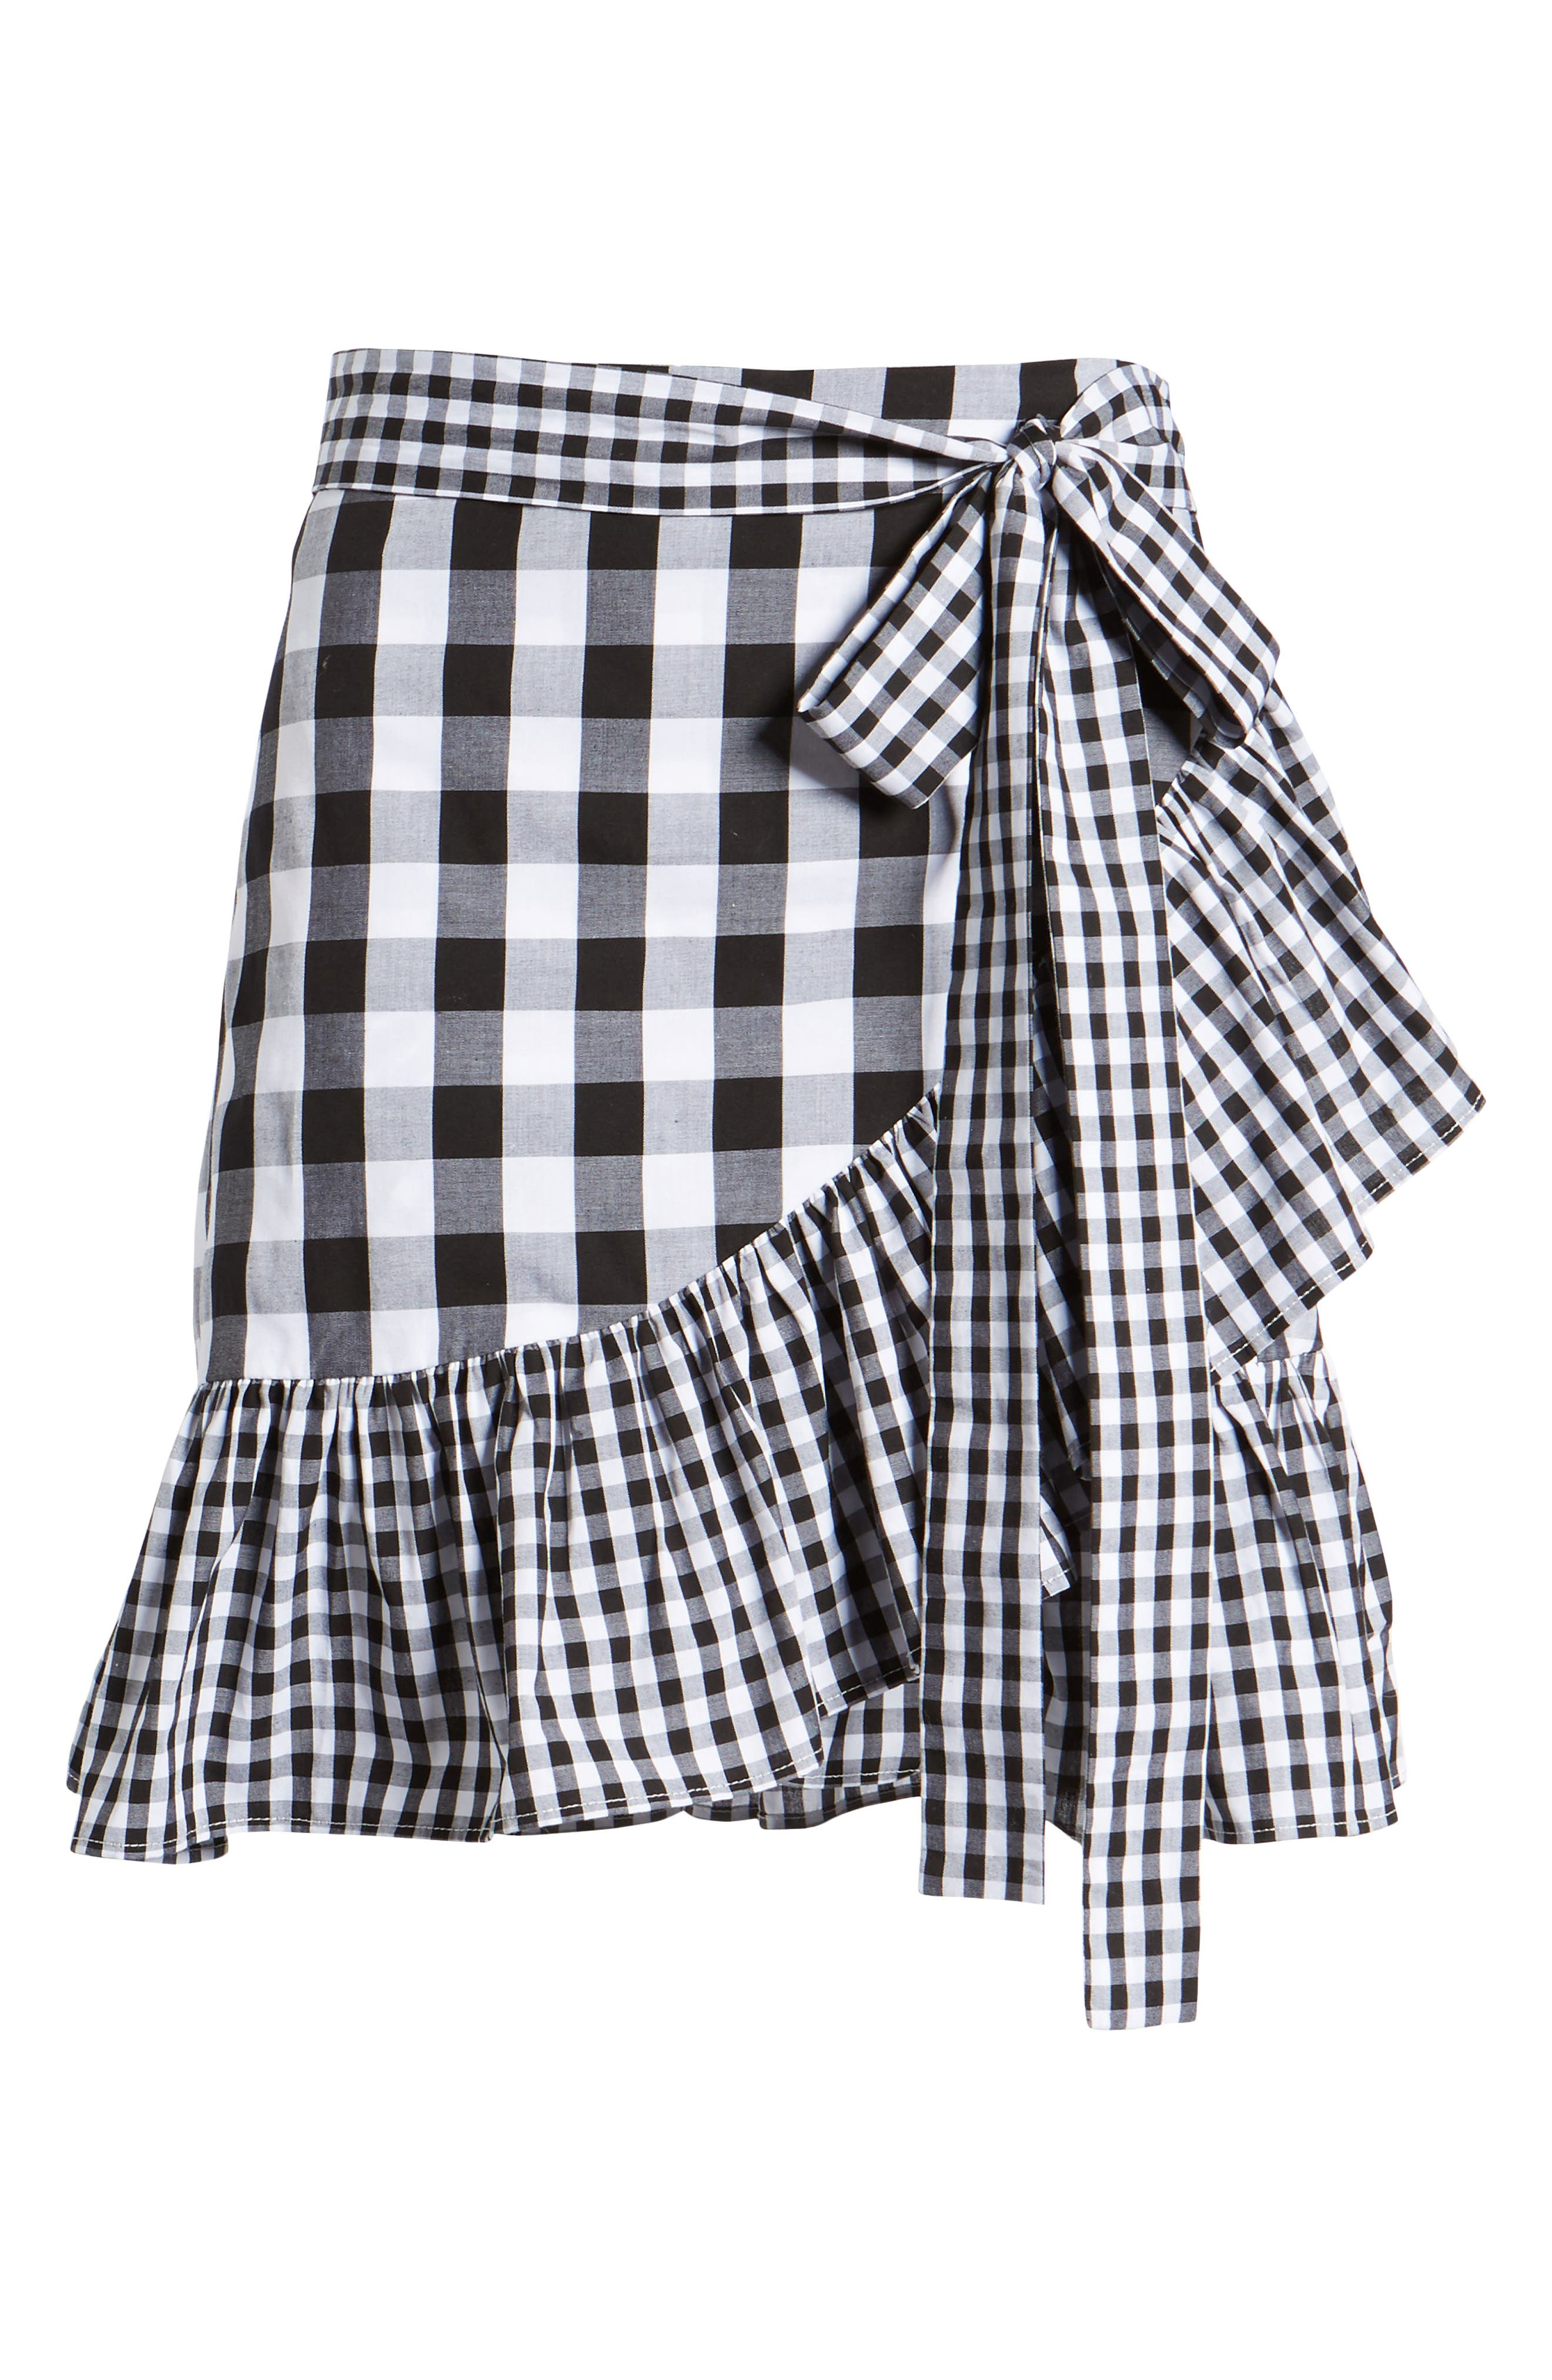 Mixed Check Ruffle Trim Skirt,                             Alternate thumbnail 6, color,                             Black Lexi Gingham